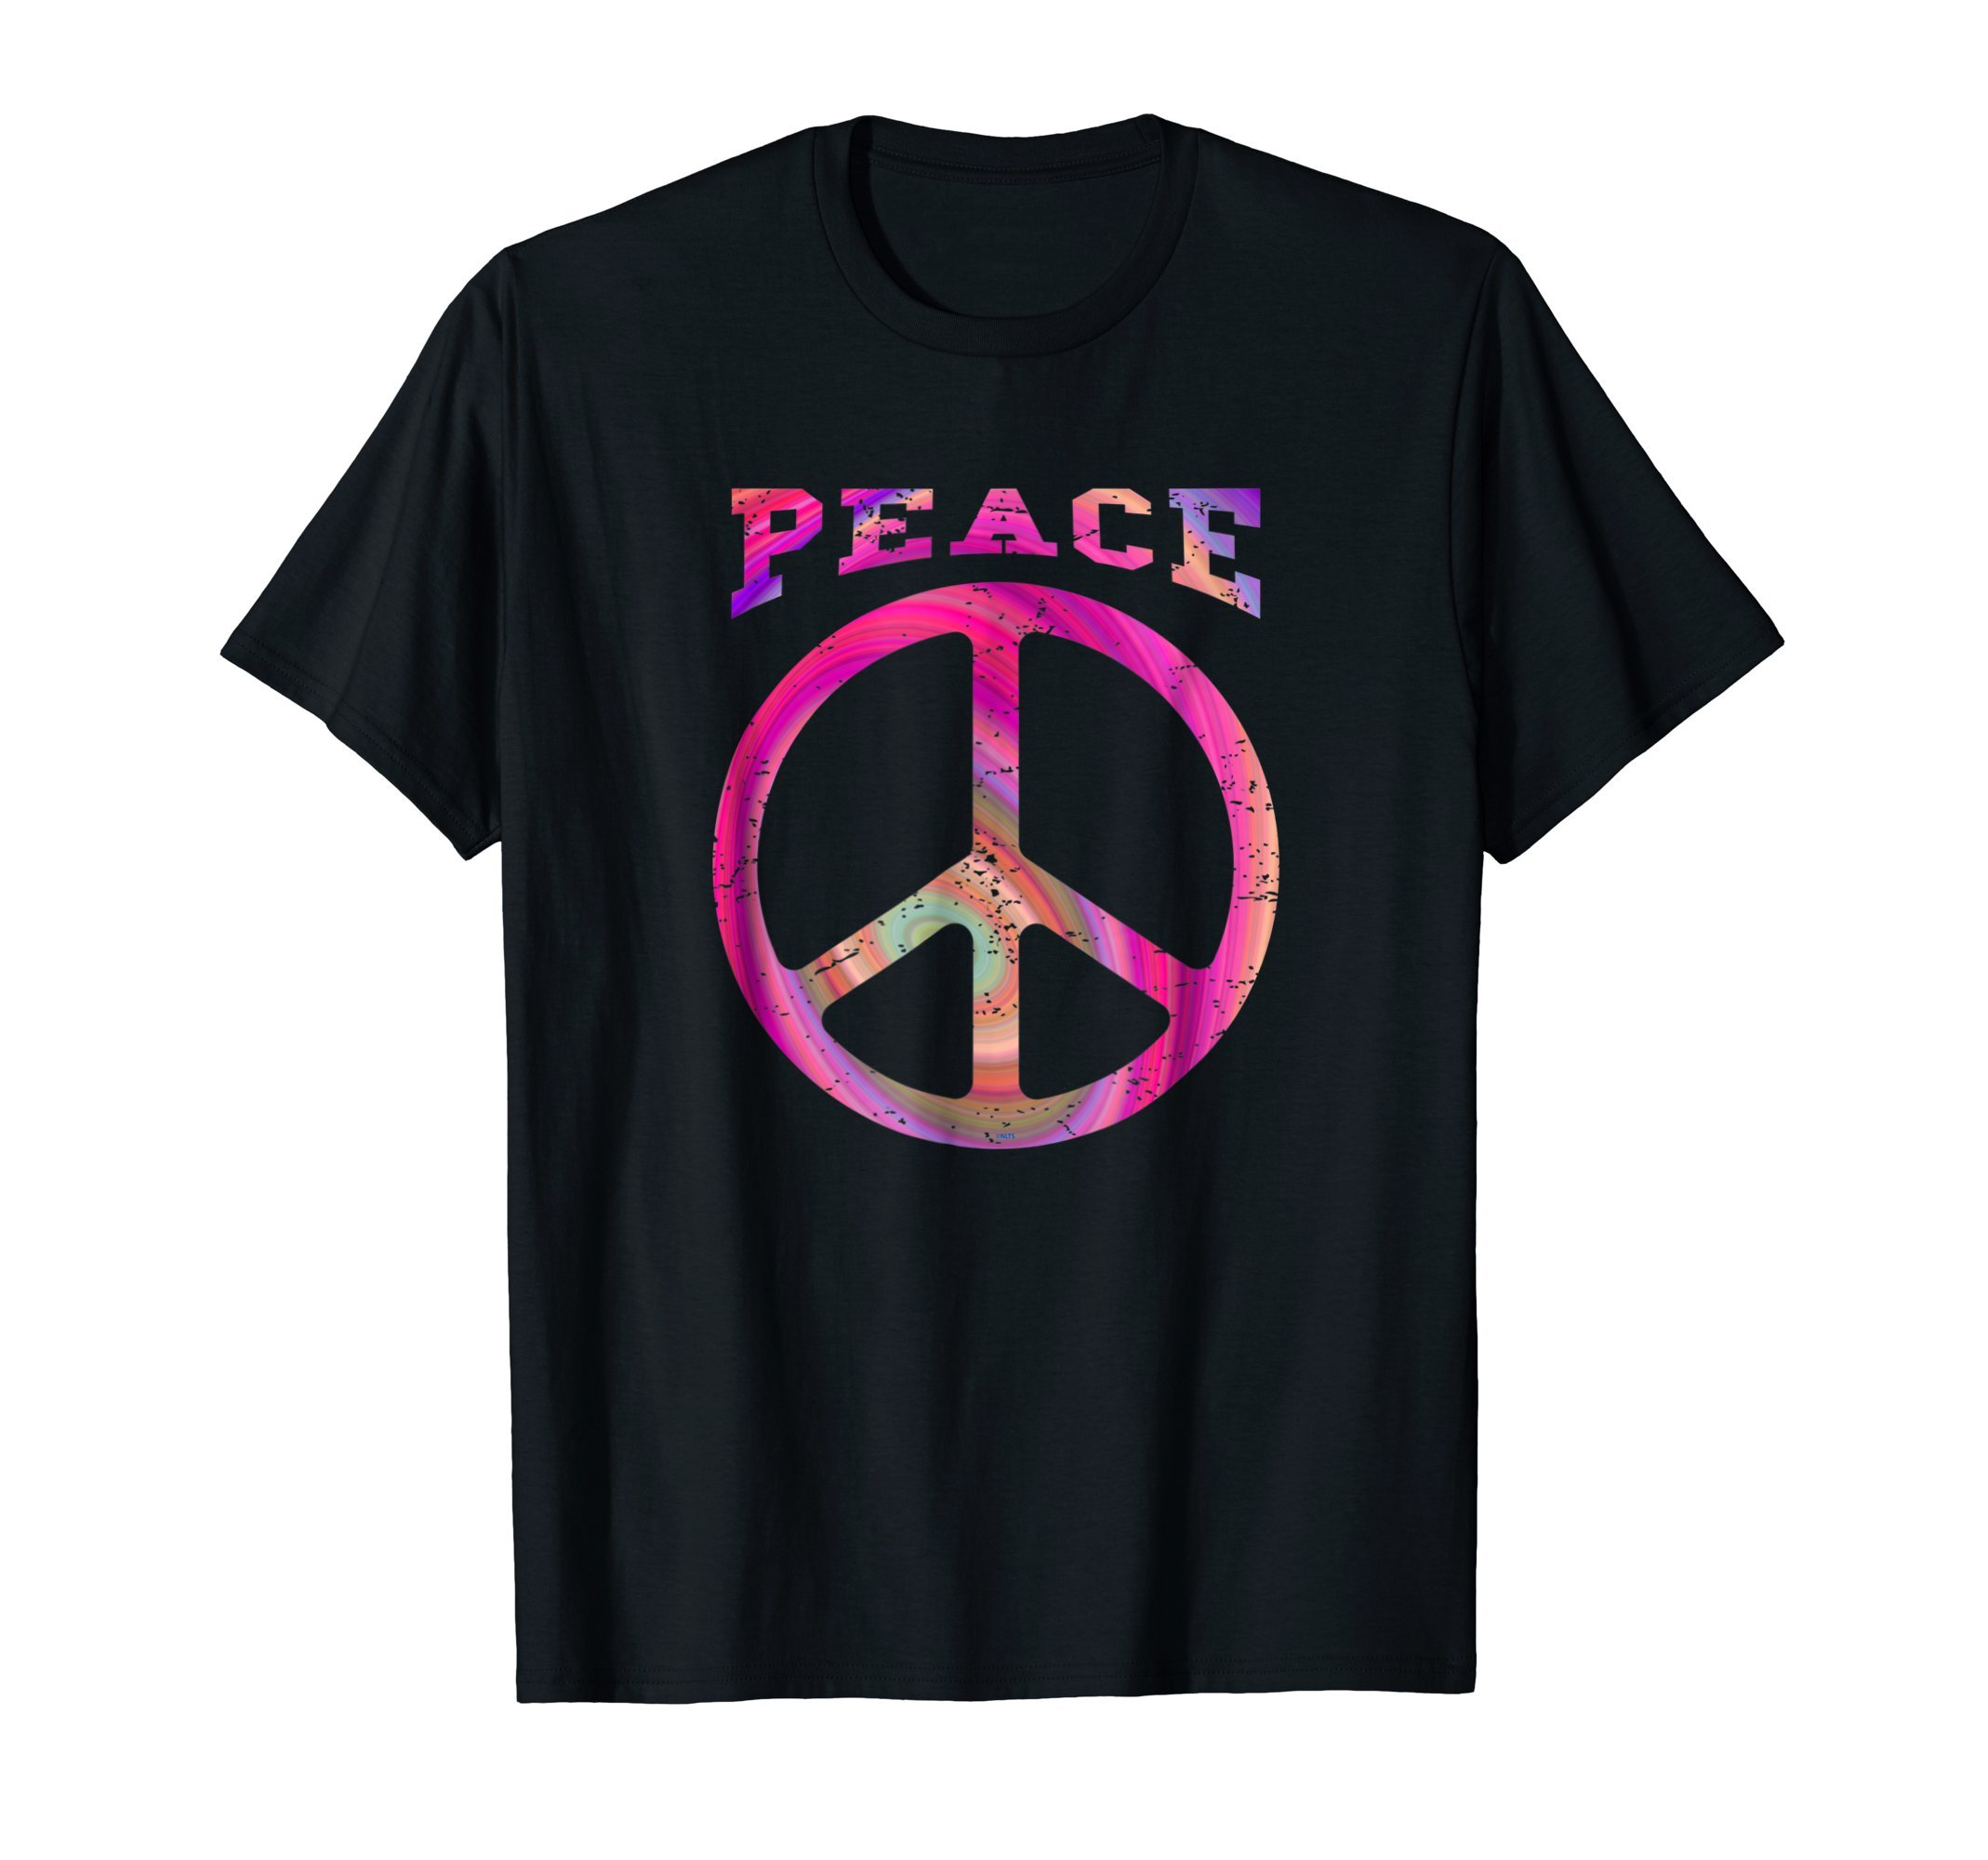 Retro-Peace-Psychedelic-Style-Hippie-T-Shirt-Tee-Gifts